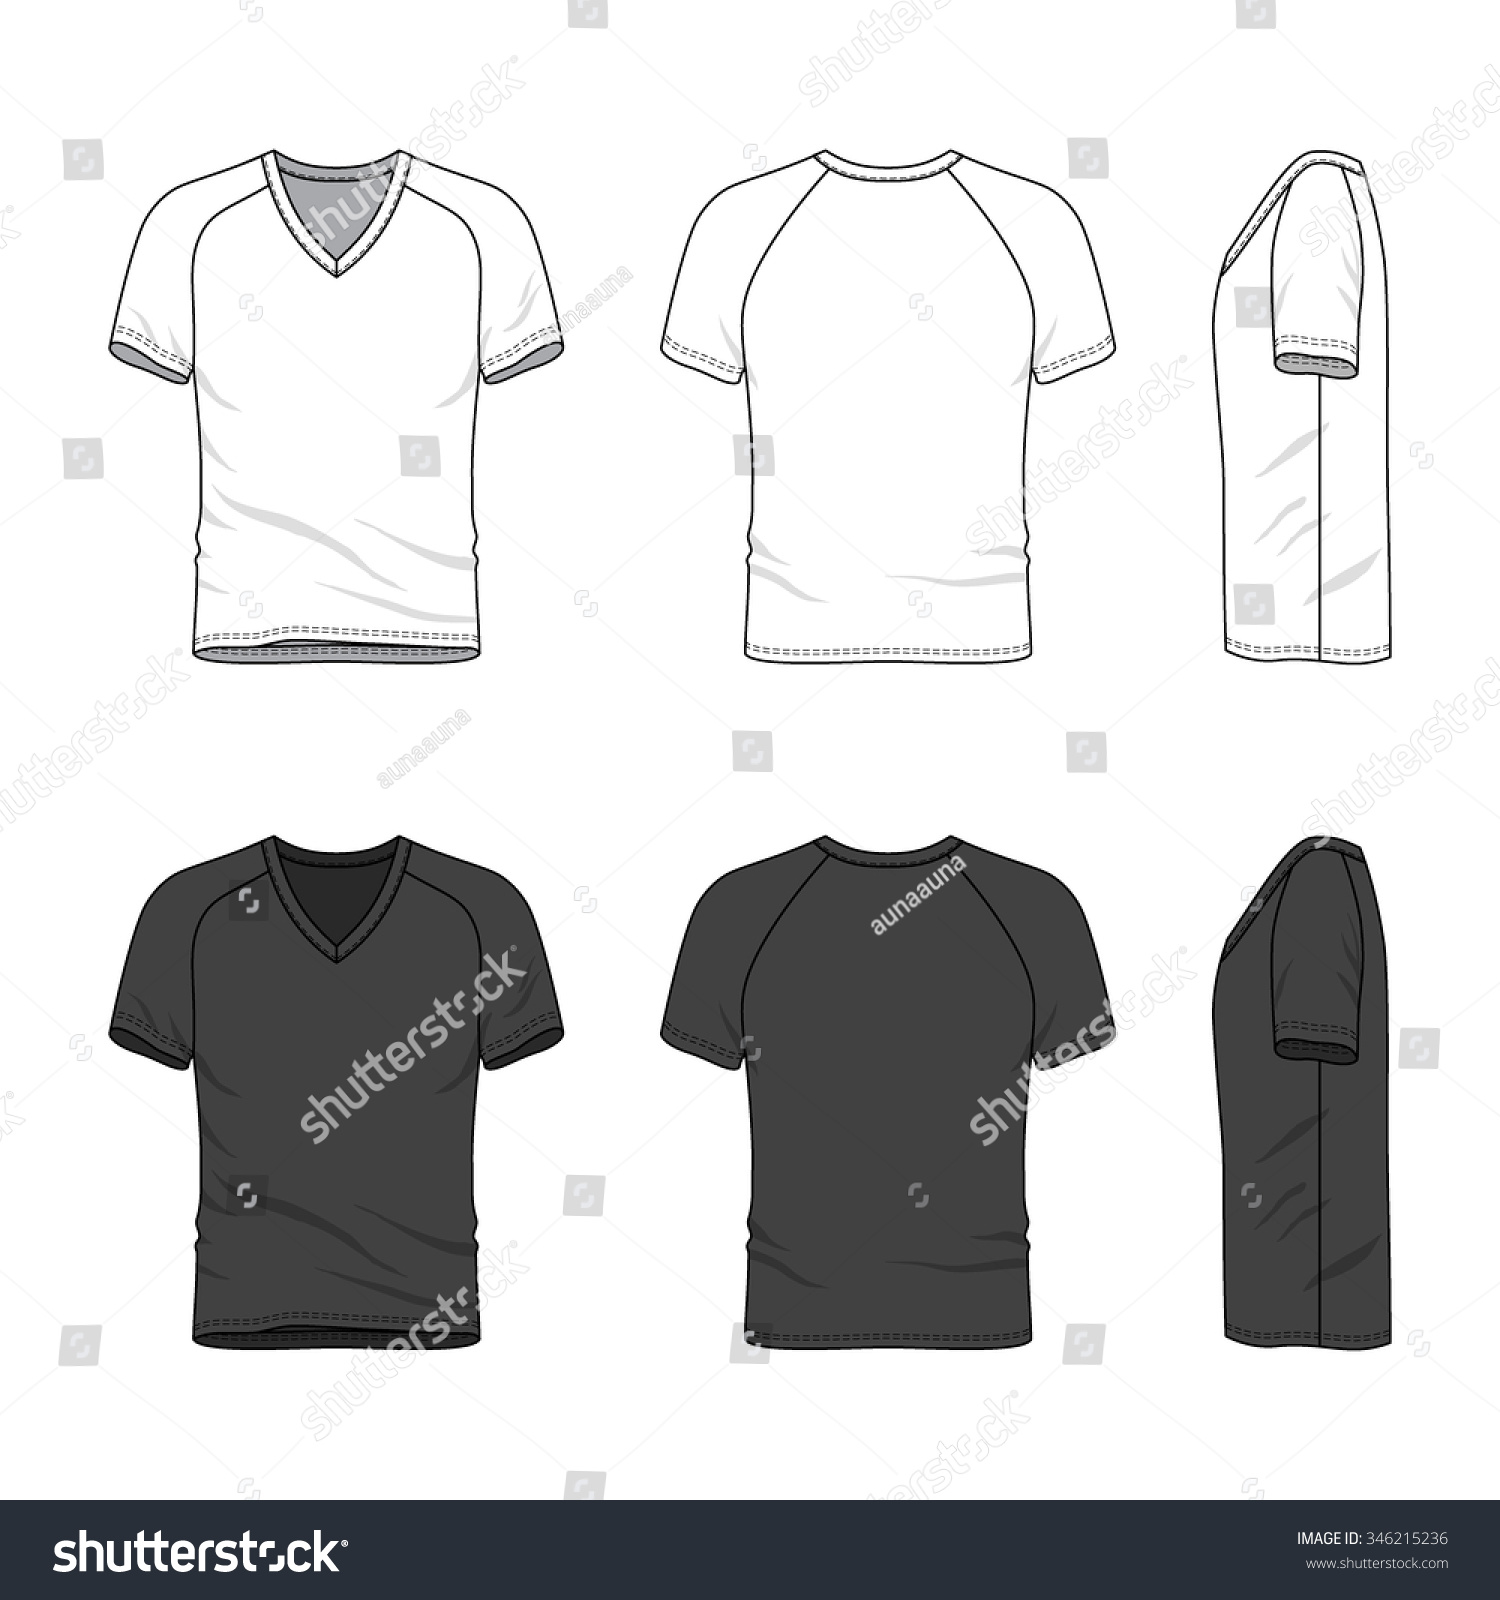 Black t shirt plain front and back - Men S Clothing Set In White And Black Colors Front Back And Side Views Of